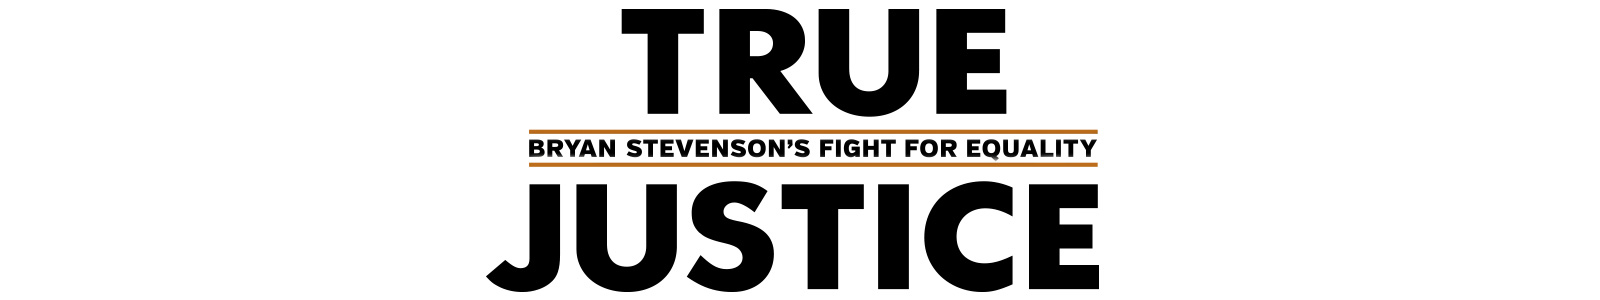 True Justice: Bryan Stephenson's Fight for Equality